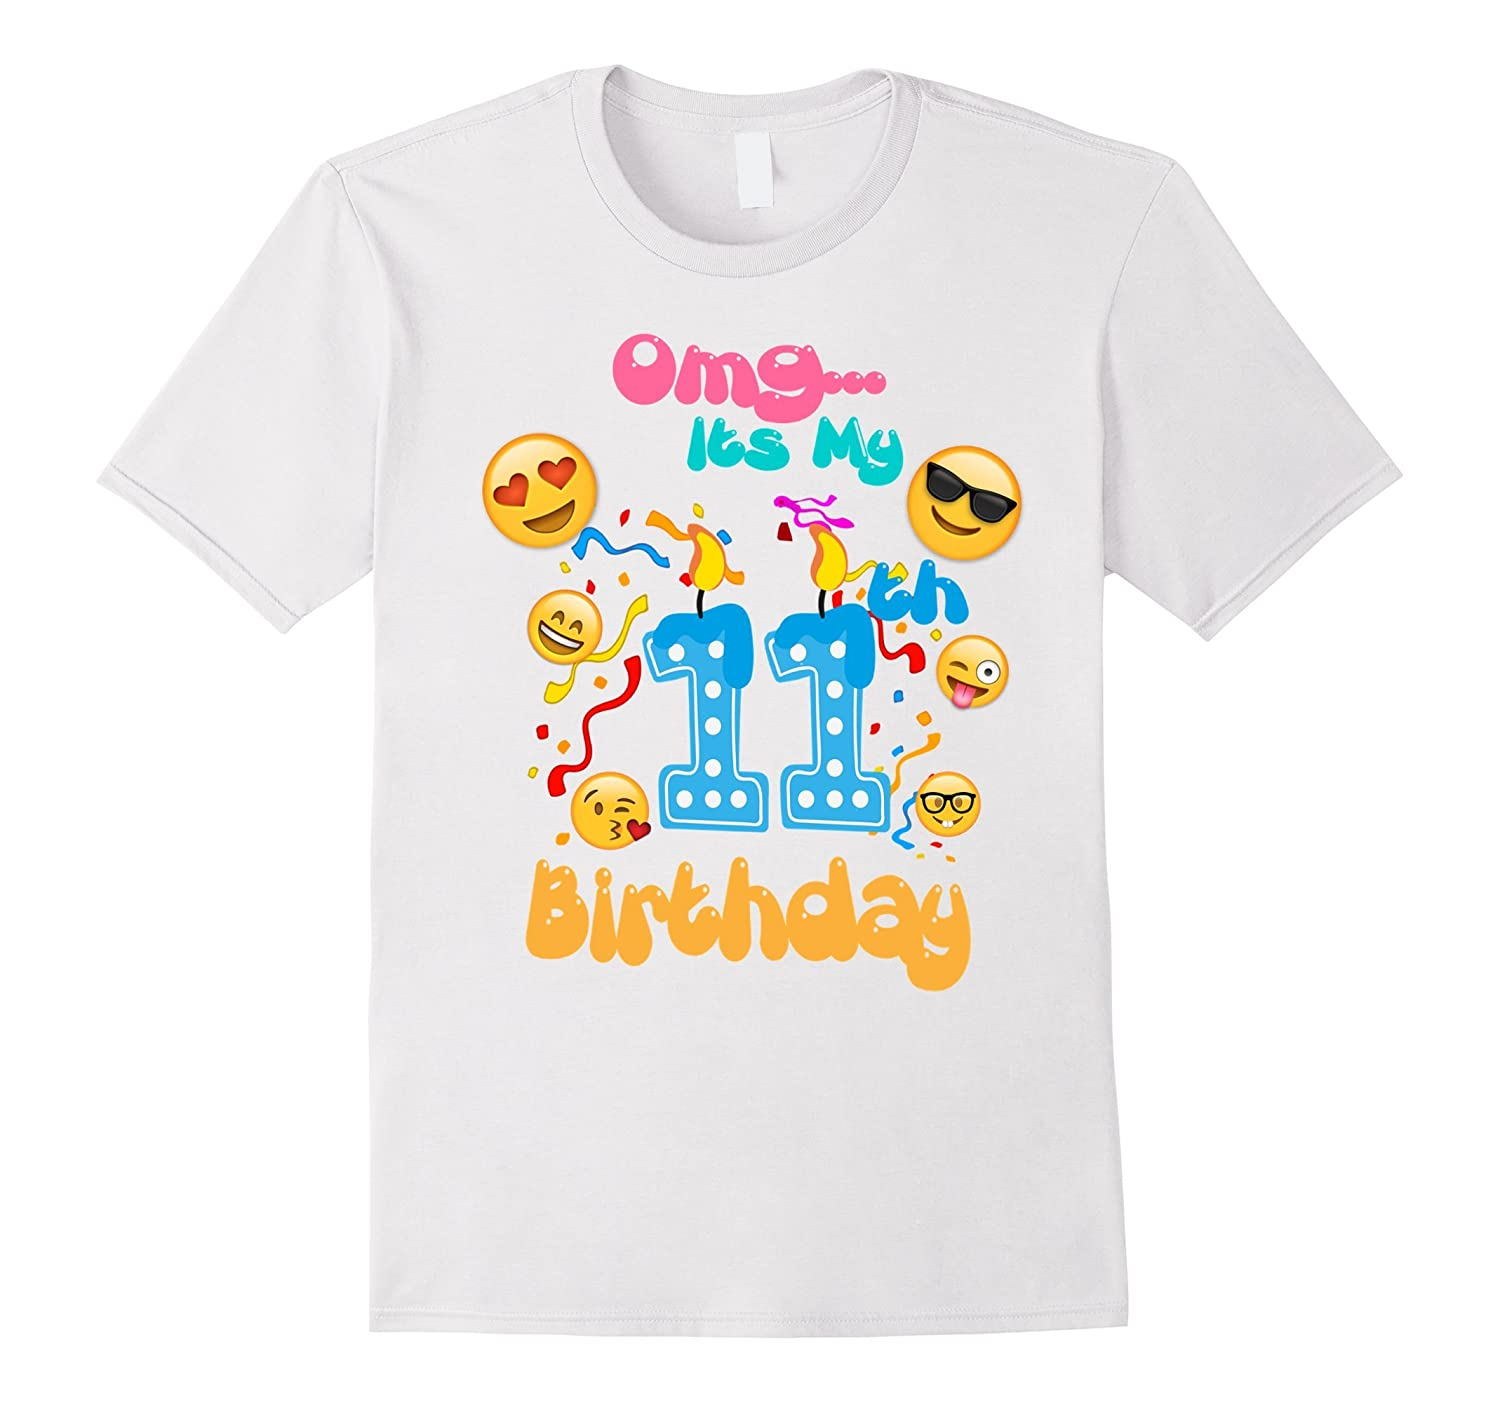 Emoji T Shirt For 11 Year Old Awesome Kids Birthday RT